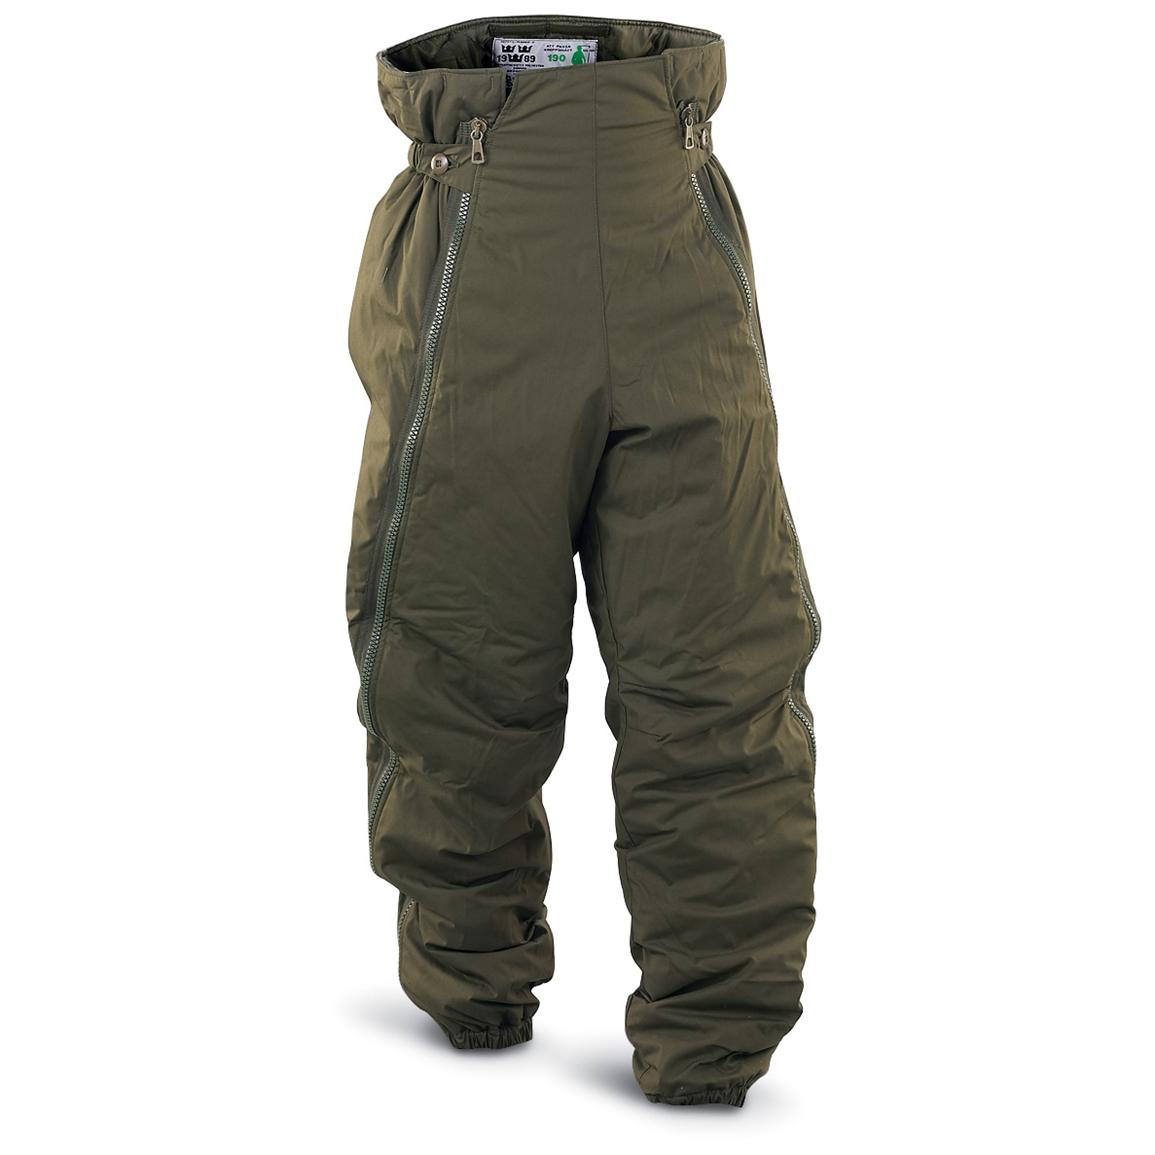 New Swedish Military M90 Insulated Pants, Olive Drab ...